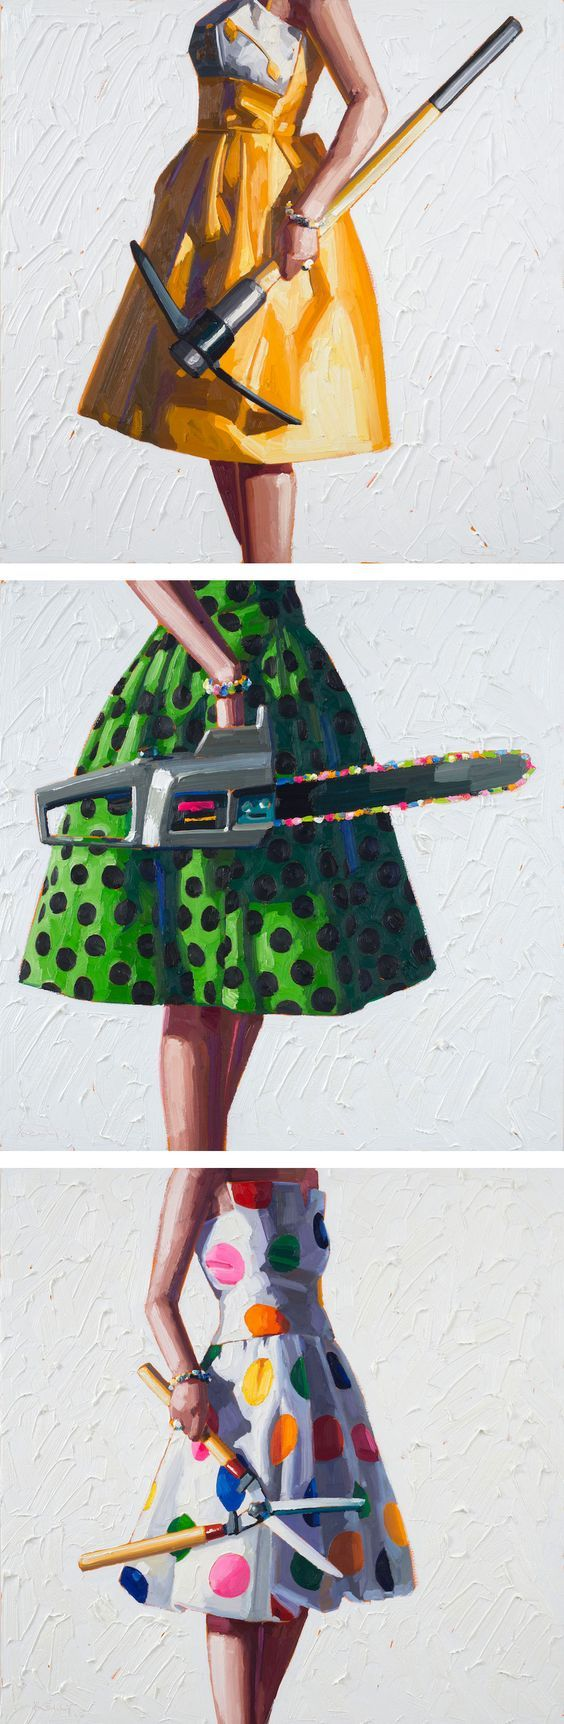 Kelly Reemsten. Links to Modern Femininity. Paintings. Out of place.